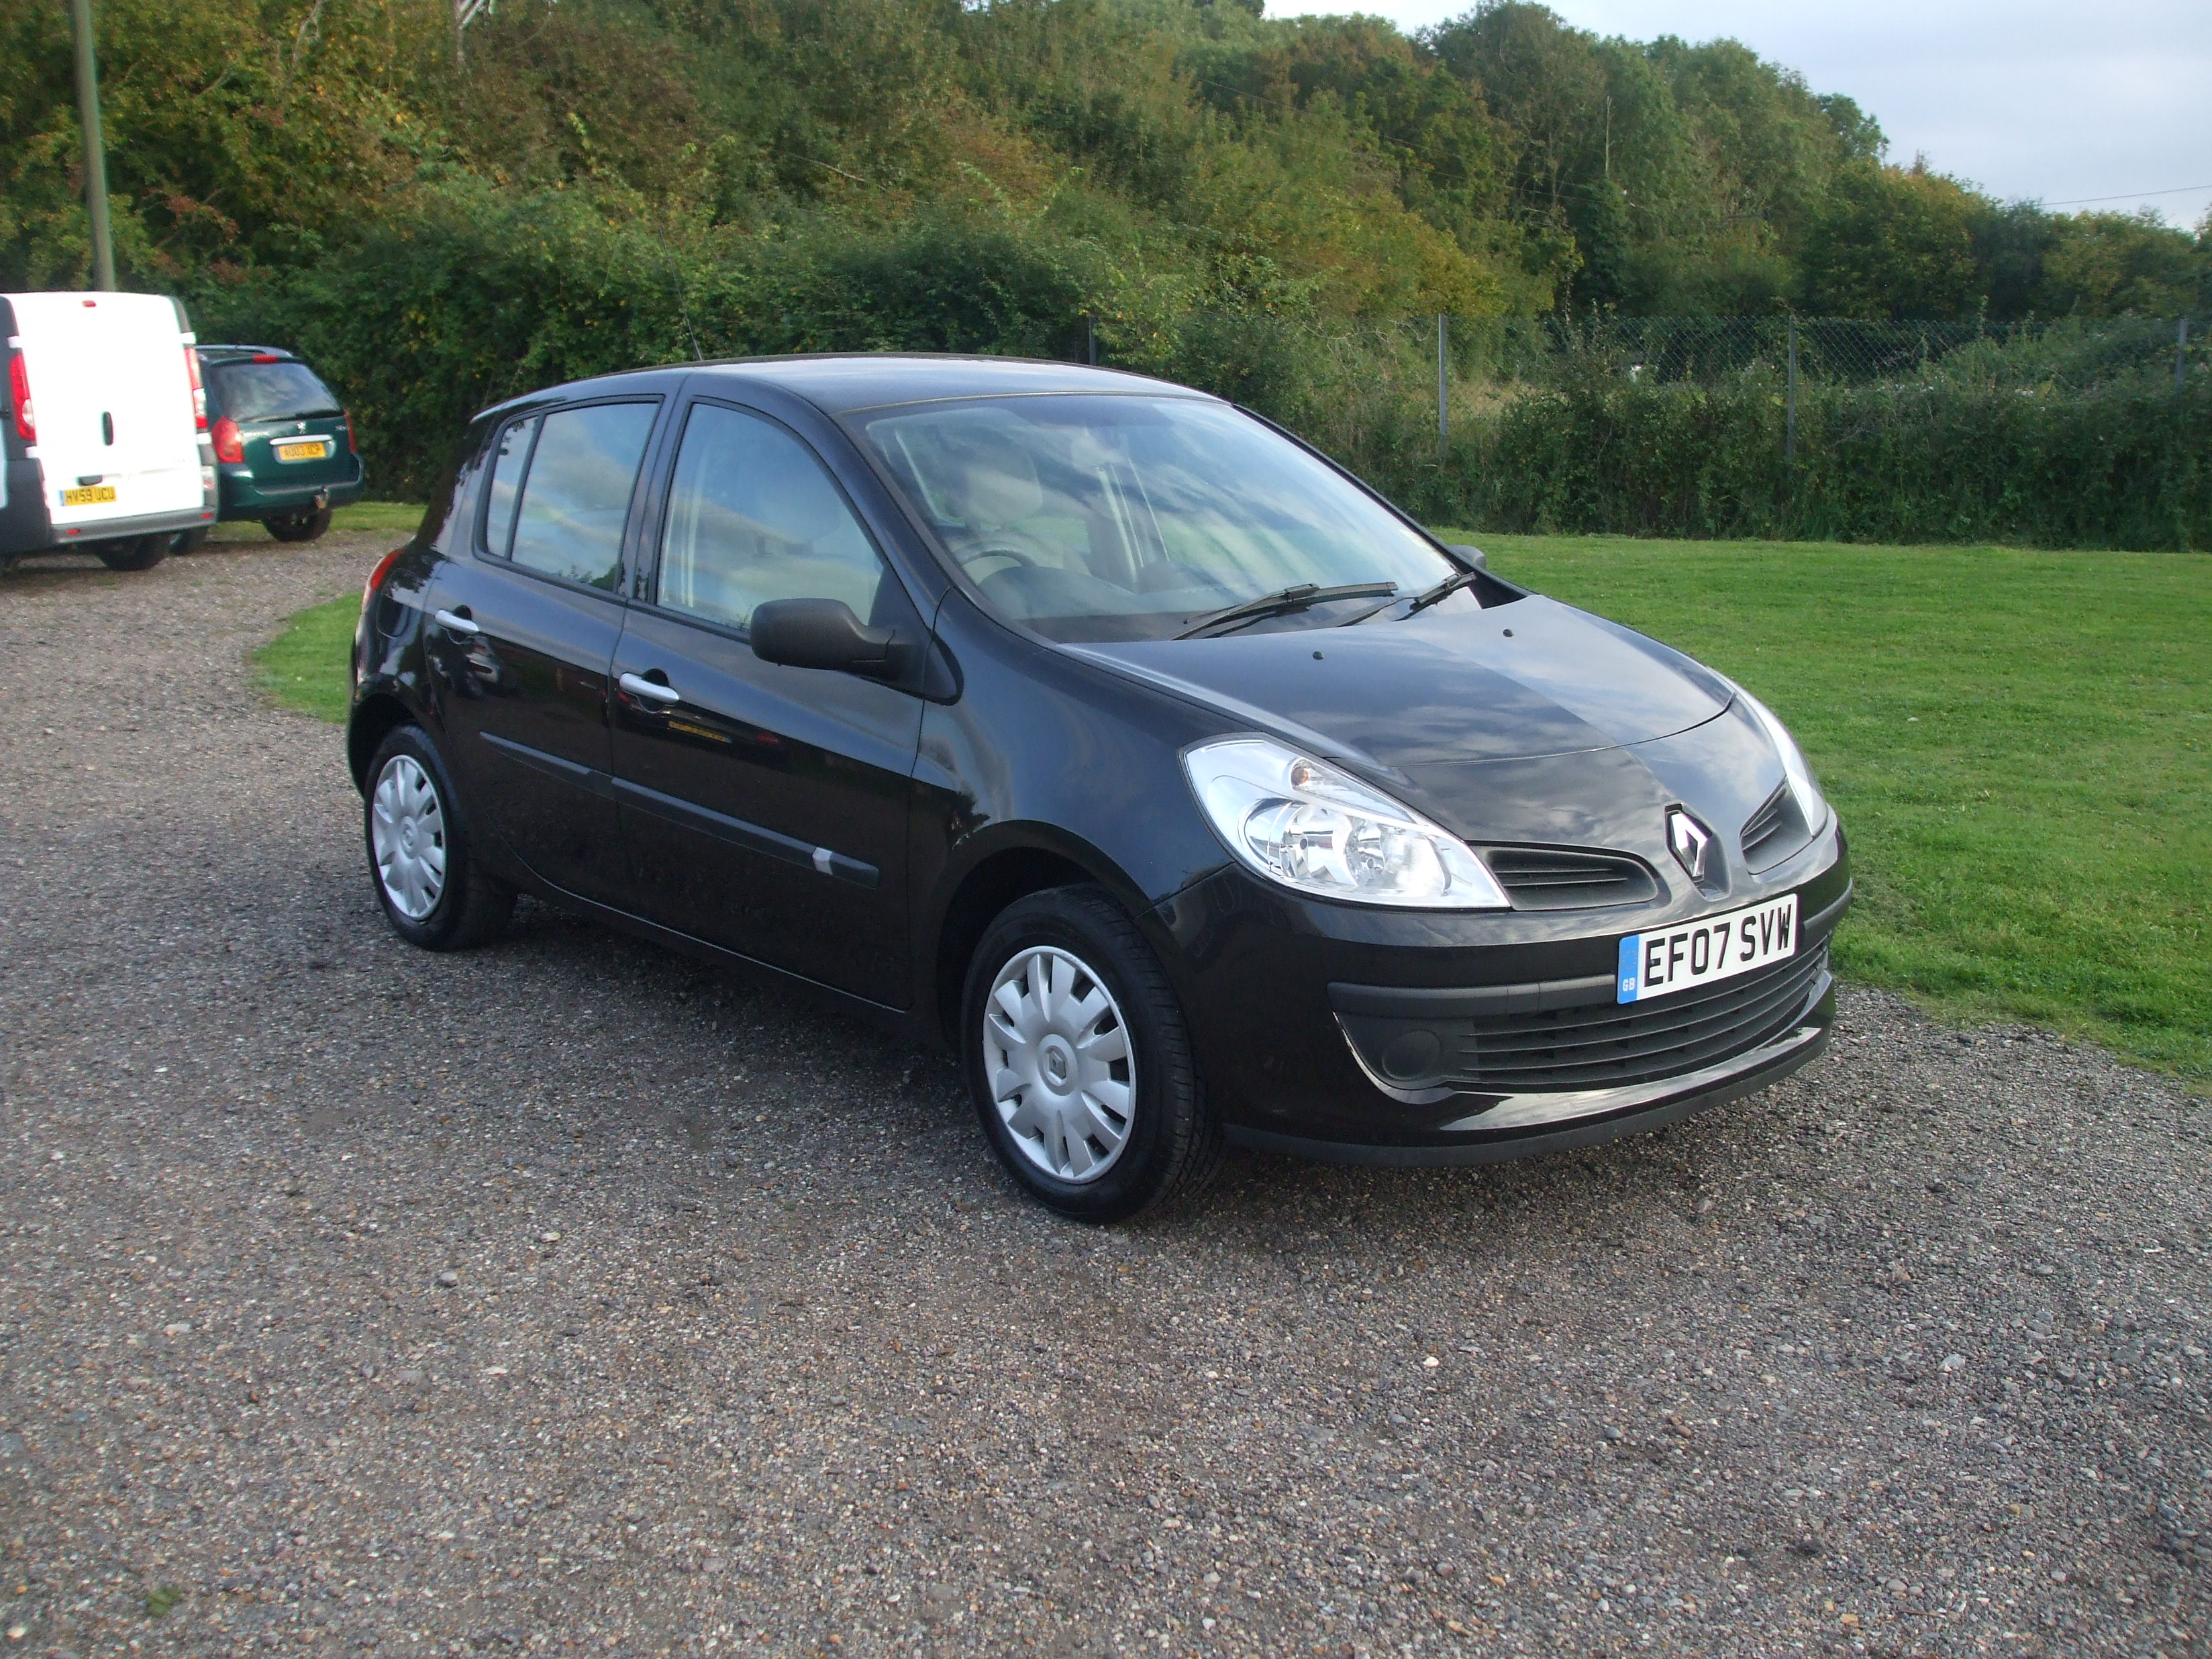 renault clio 1 5 expression dci 07 reg sold ymark vehicle services. Black Bedroom Furniture Sets. Home Design Ideas